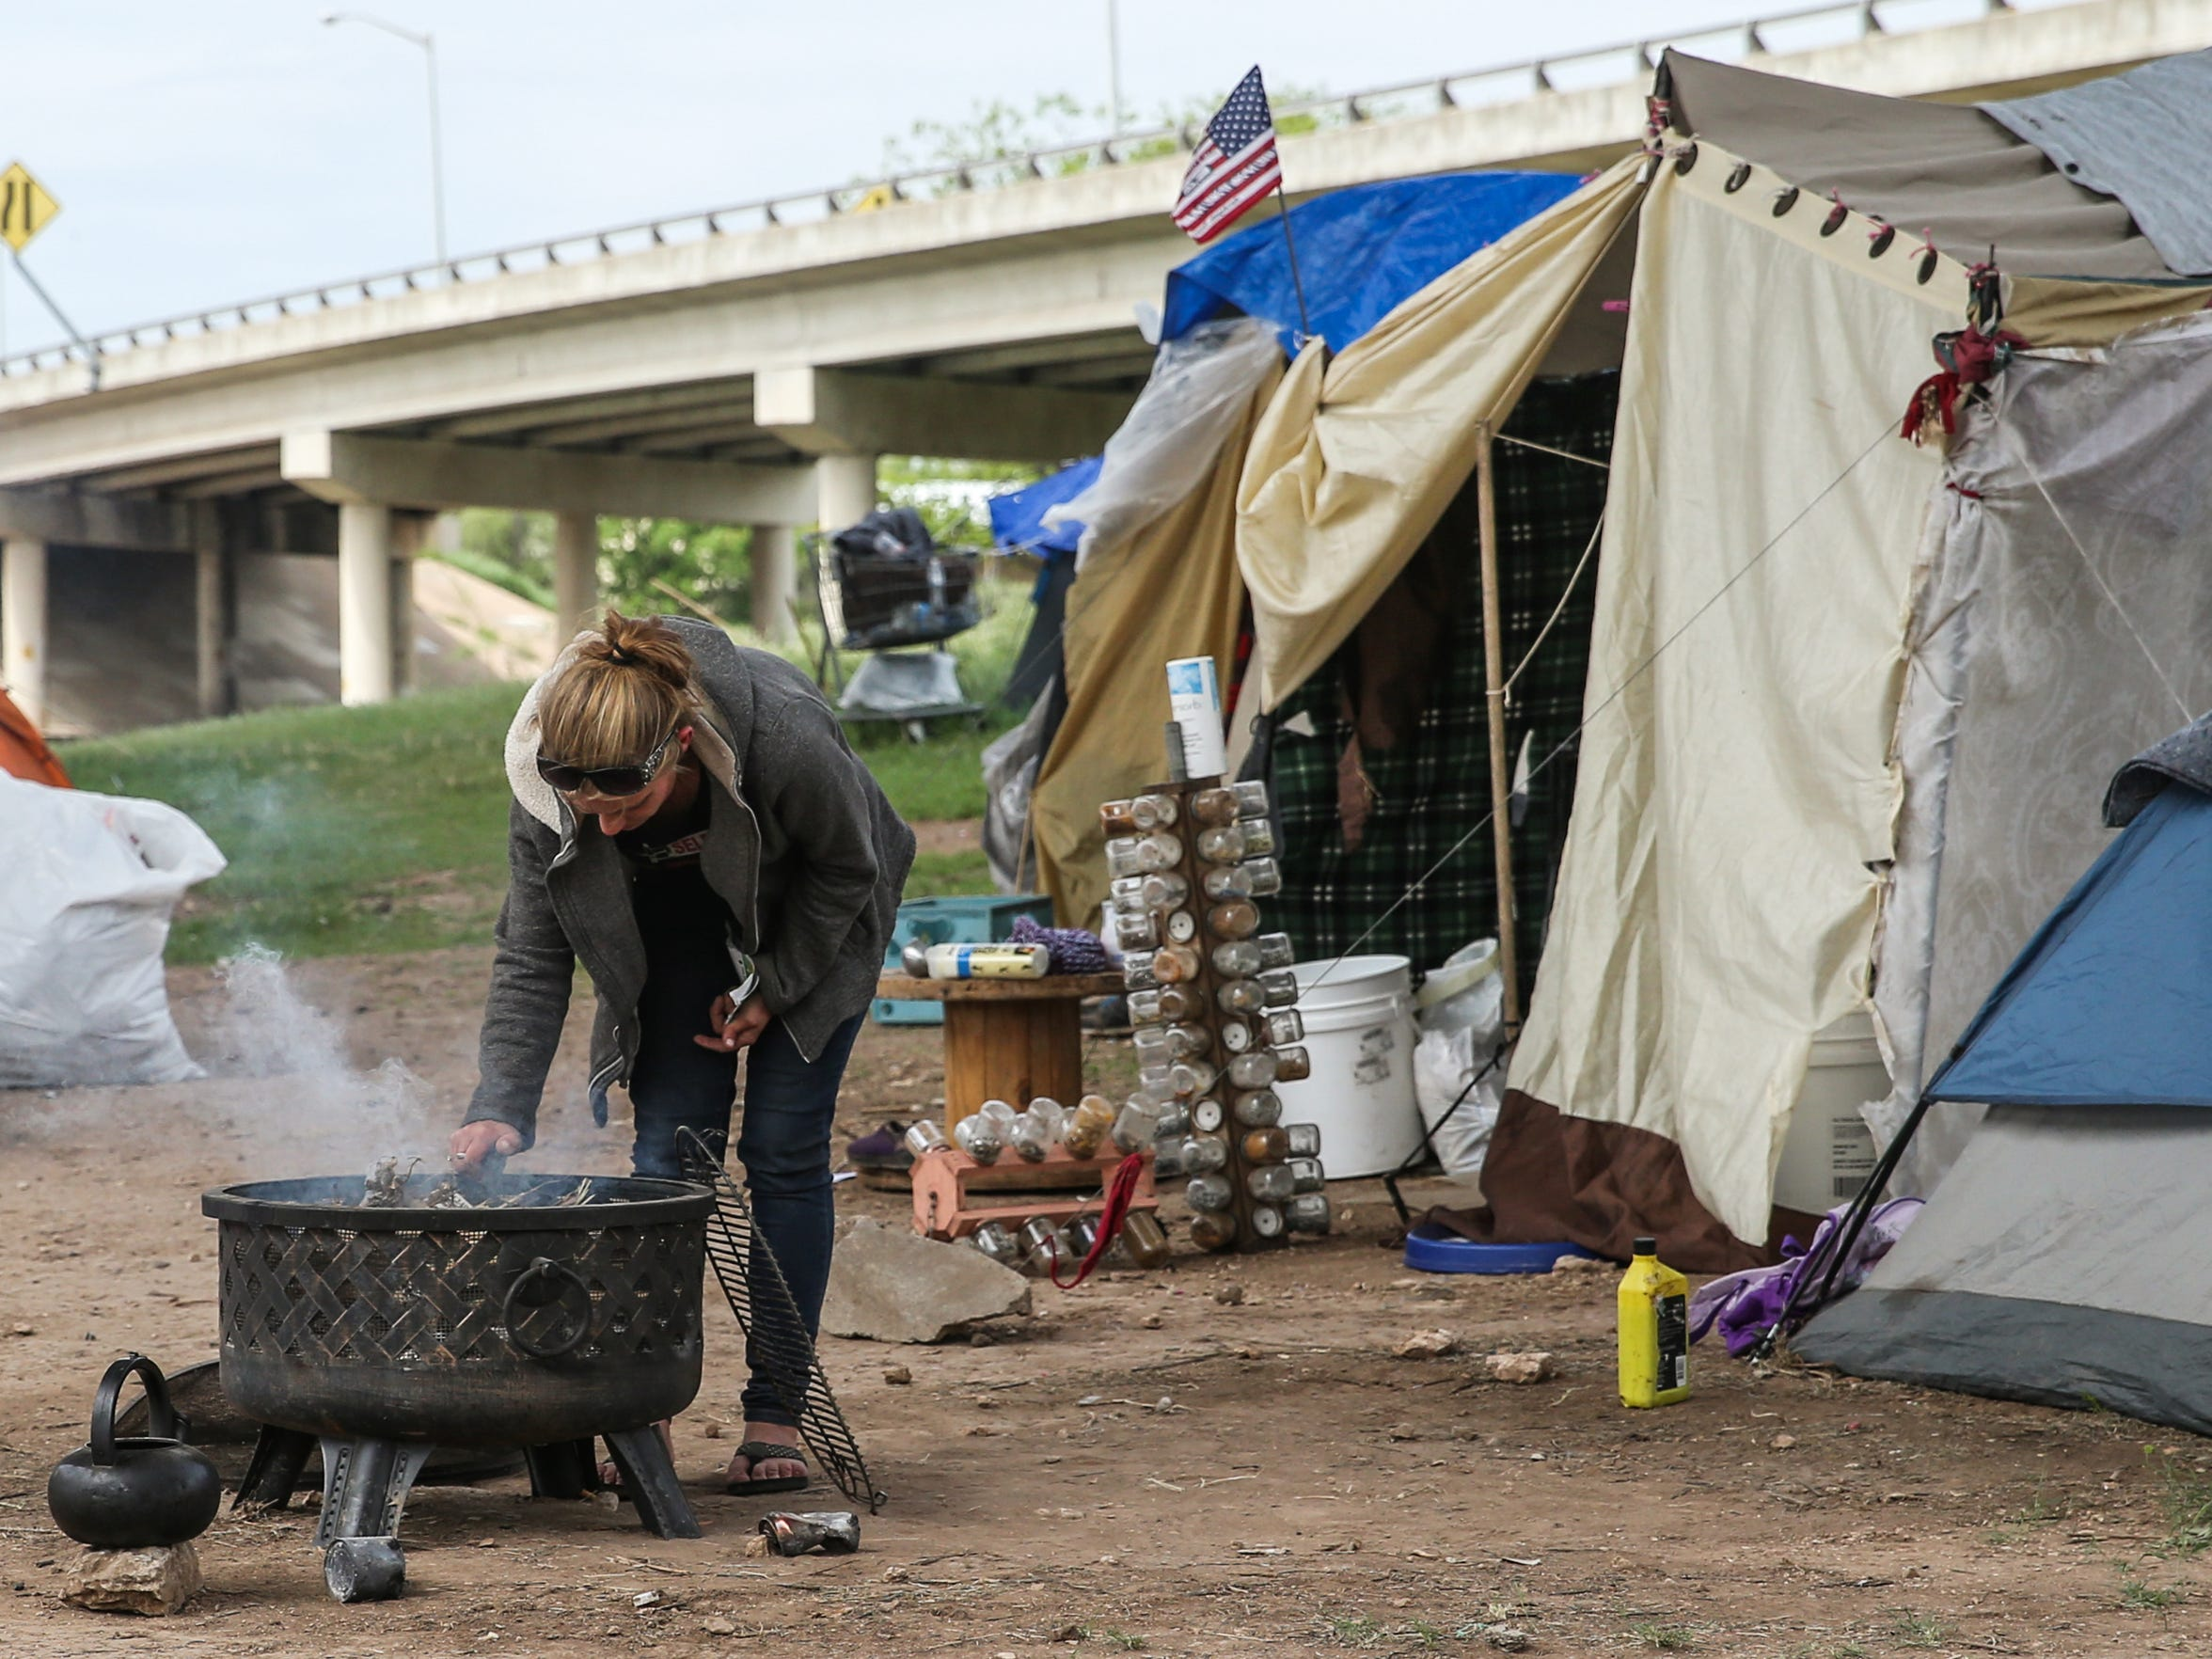 Heidi Martinez builds a fire at the tent city under the Houston Harte Expressway in San Angelo. Heidi and her husband, Joe, were leaders at the tent city before recently moving to Arkansas, where Joe found work.